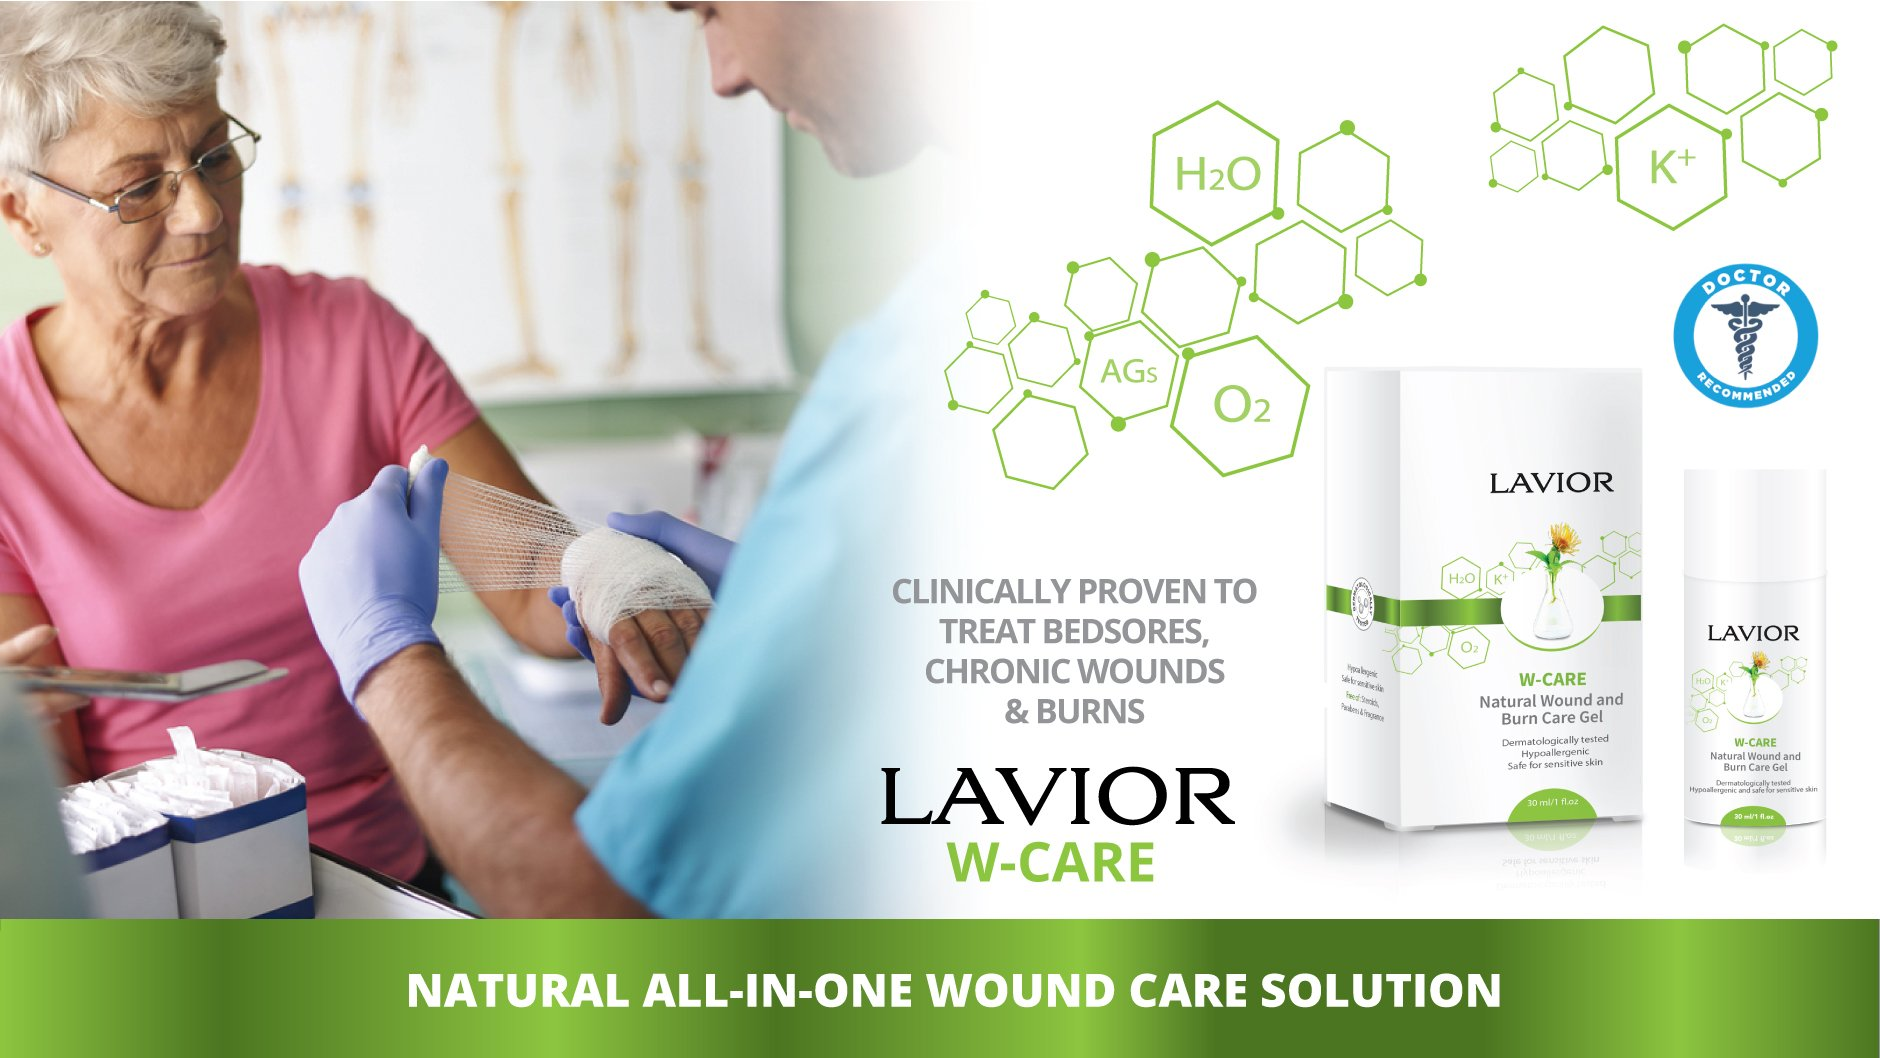 Wound and burn care